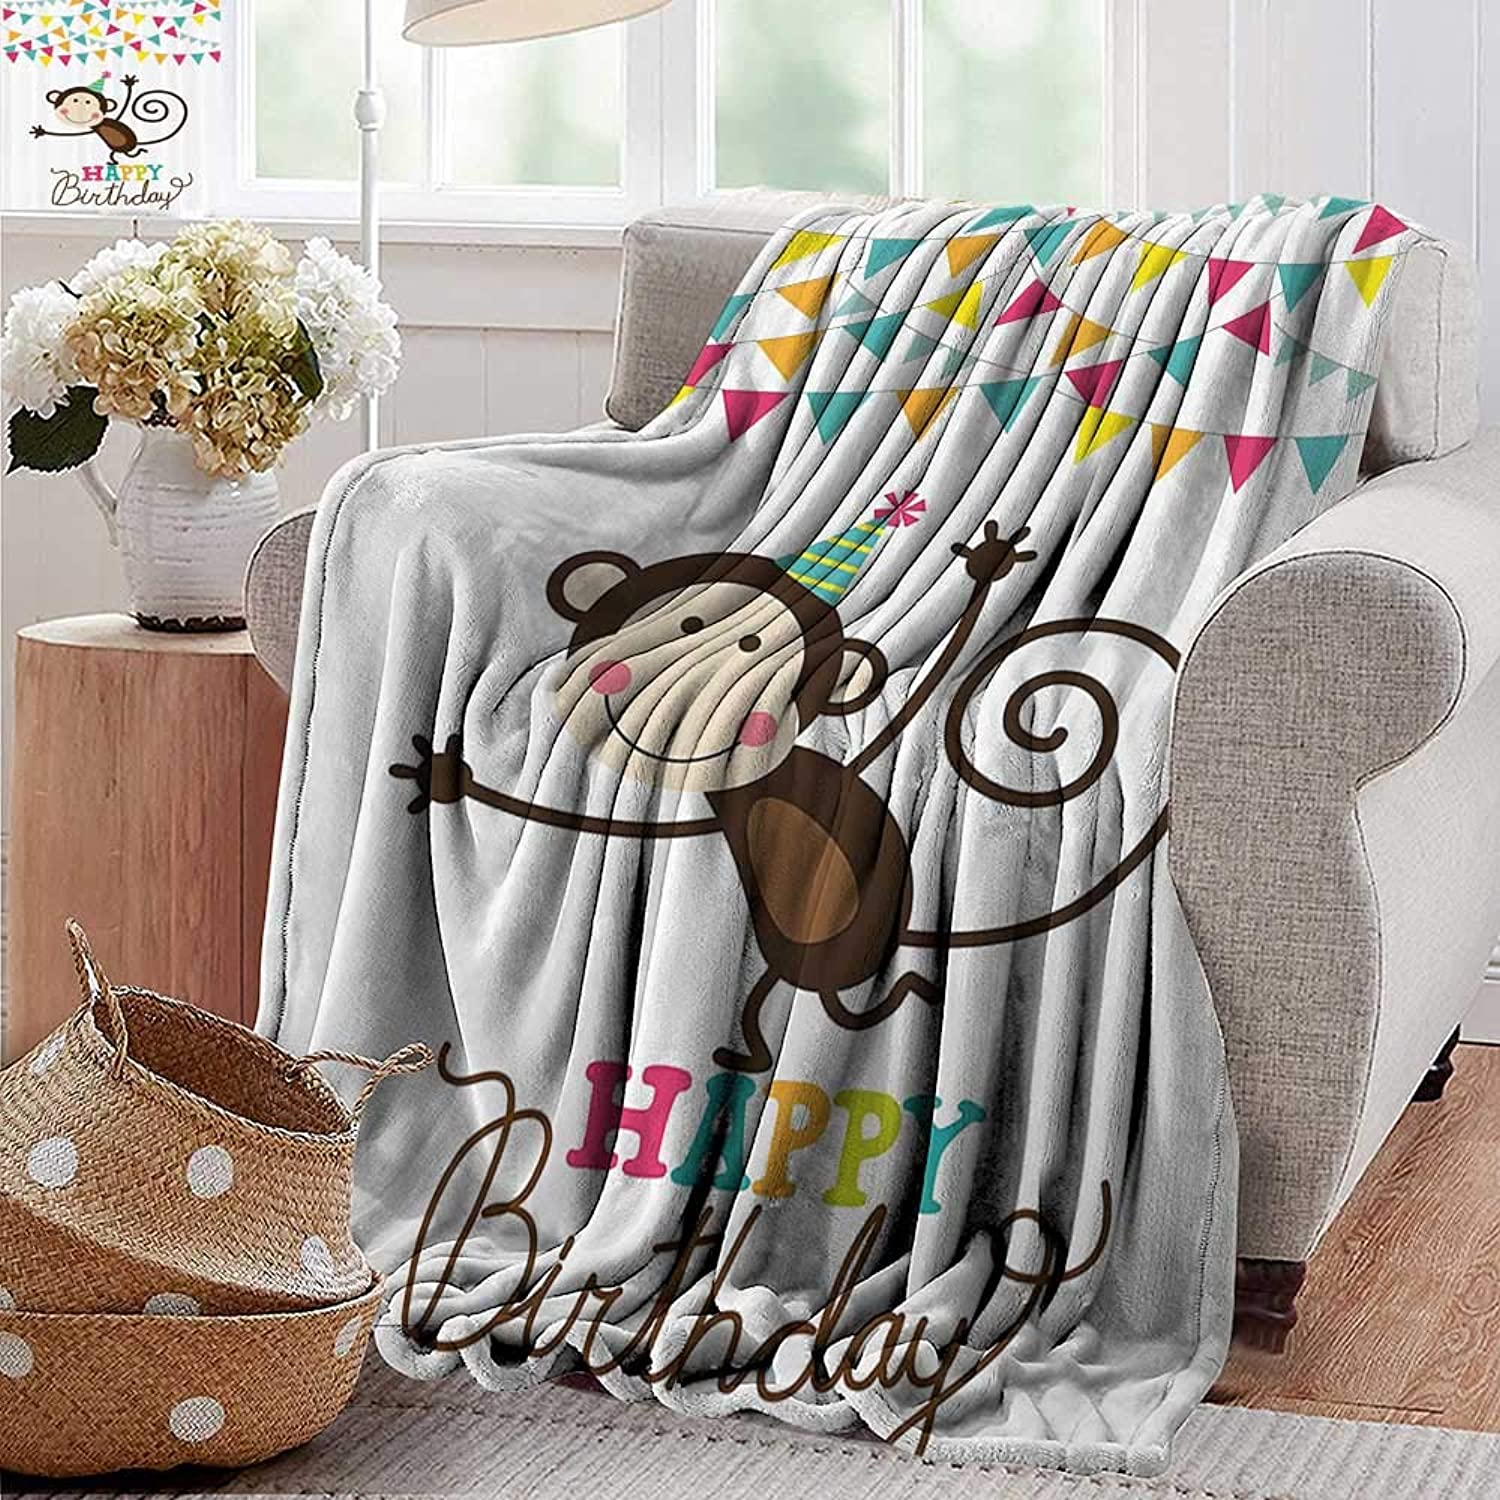 PearlRolan Ultra Soft Flannel Blanket,Birthday Decorations for Kids,Brown Monkey Posing at a Party with Two Line Flags Cone Image,Multicolor,Lightweight Microfiber,All Season for Couch or Bed 35 x60